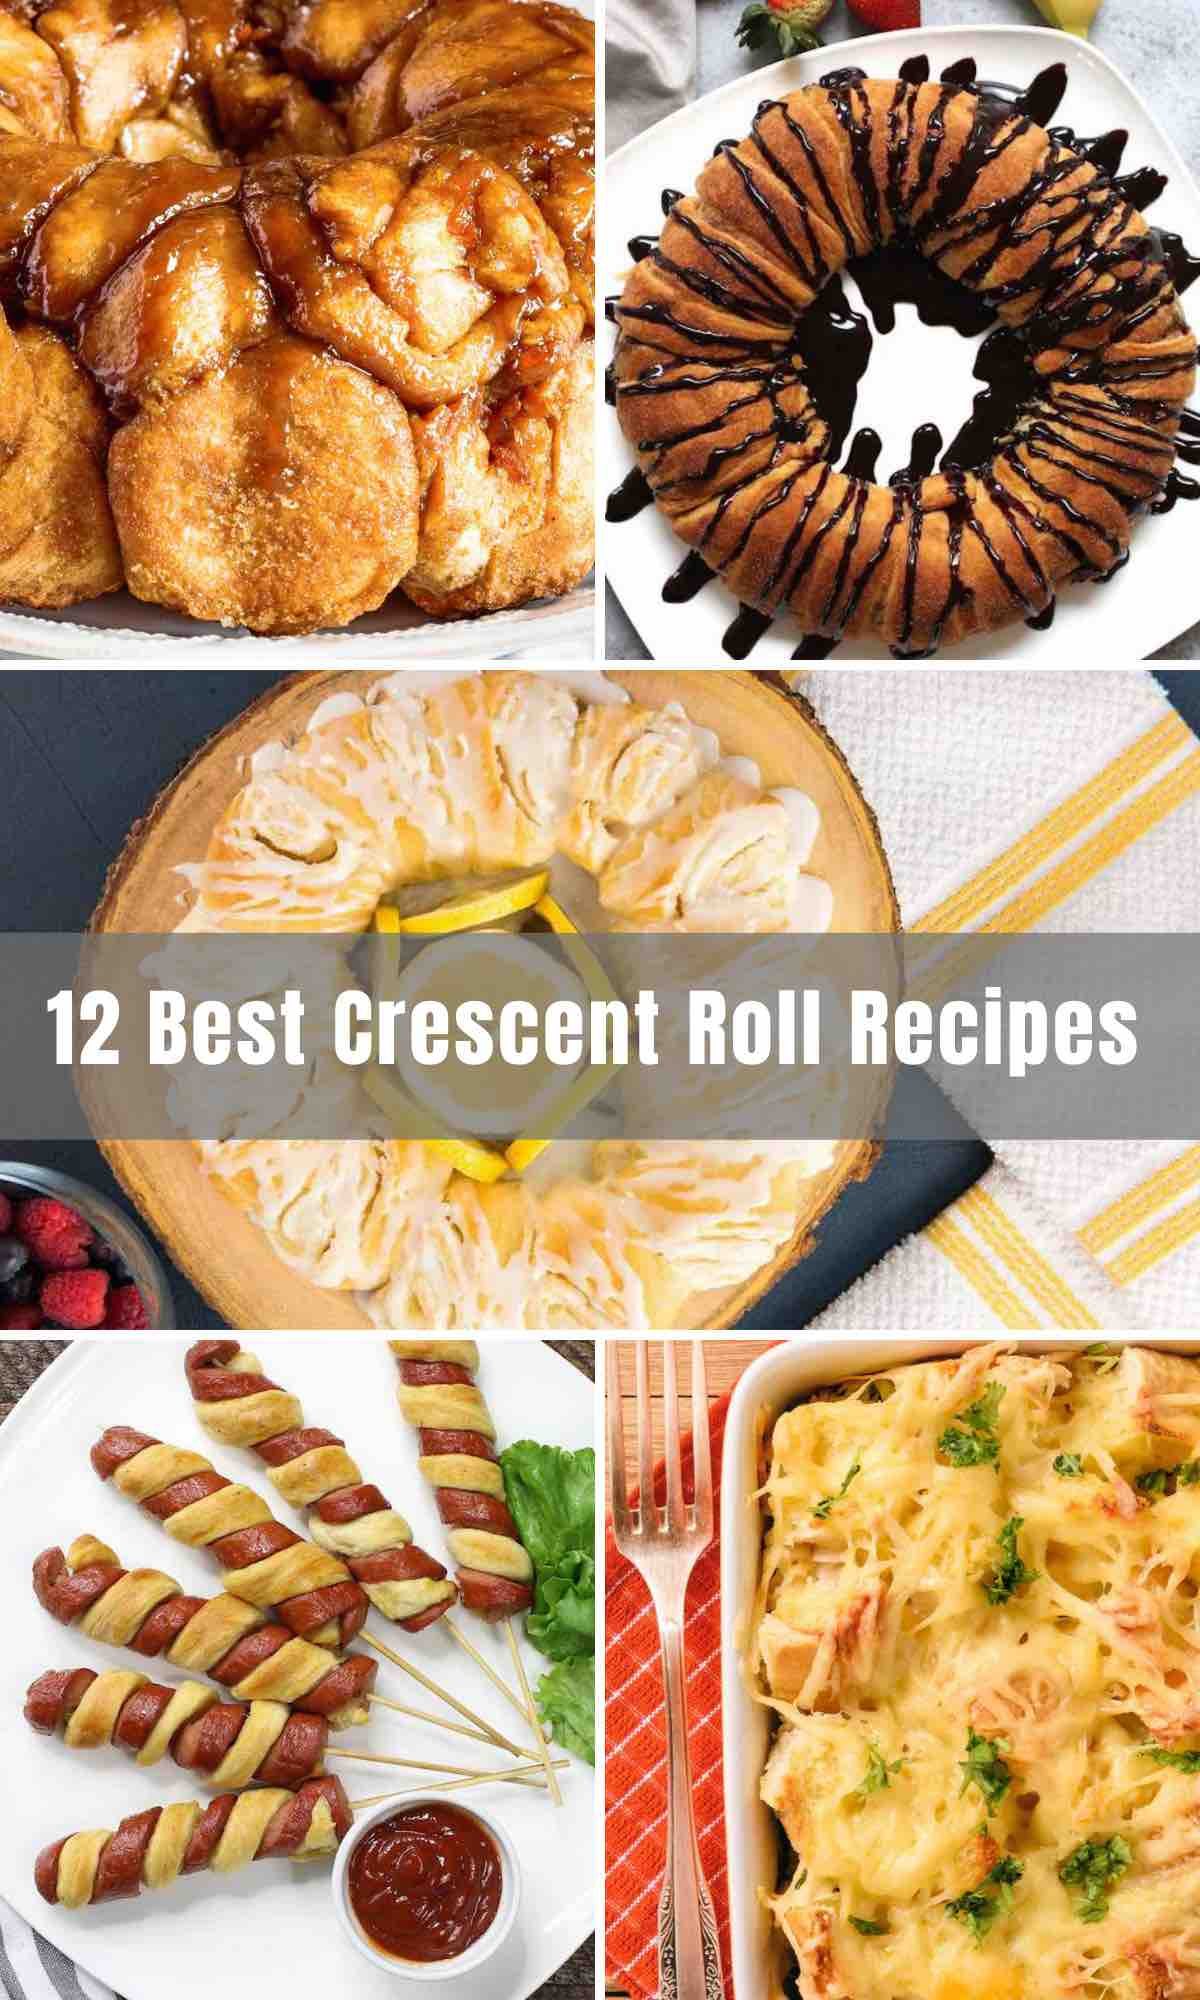 For years we've loved the crescent rolls. Now we're able to take these rolls to the next level, making quick and easy recipes with refrigerated Pillsbury Crescent Rolls. Get creative and enjoy them from breakfast, lunch, or dinner! Below you will find the 12 best delicious Crescent Roll Recipes that will have you fall in love with crescent rolls all over again.